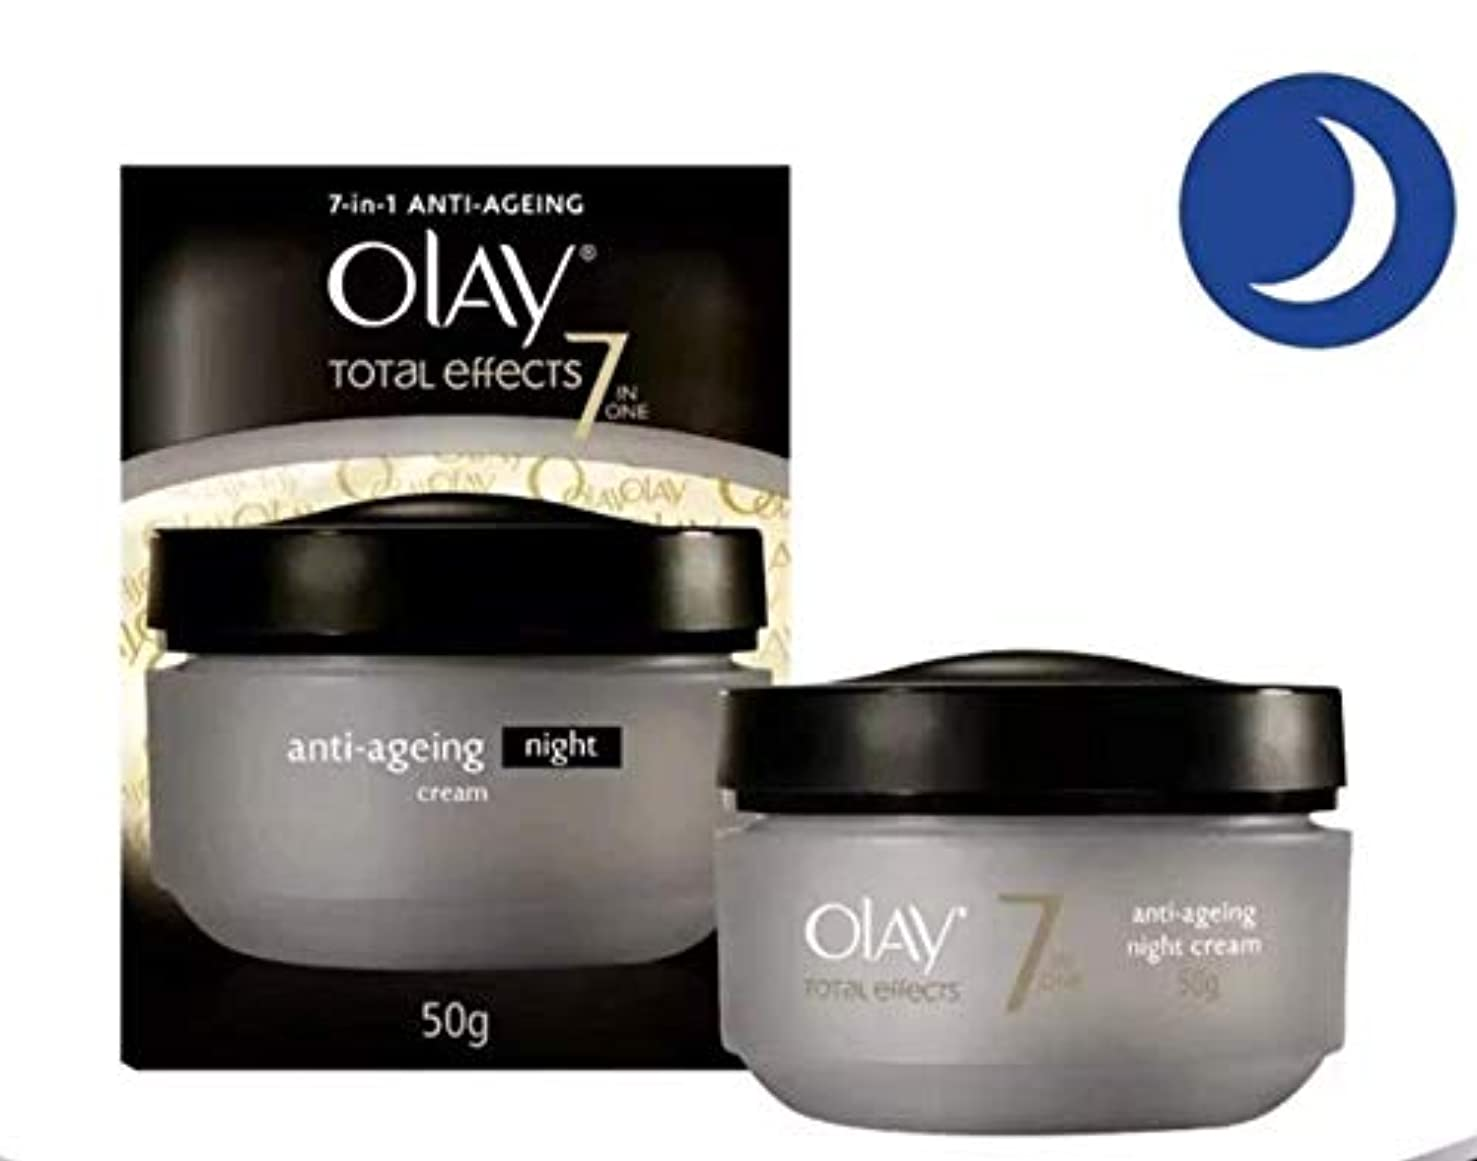 OLAY TOTAL EFFECTS 7 IN ONE ANTI-AGEING 【NIGHT CREAM】 50g [並行輸入品]